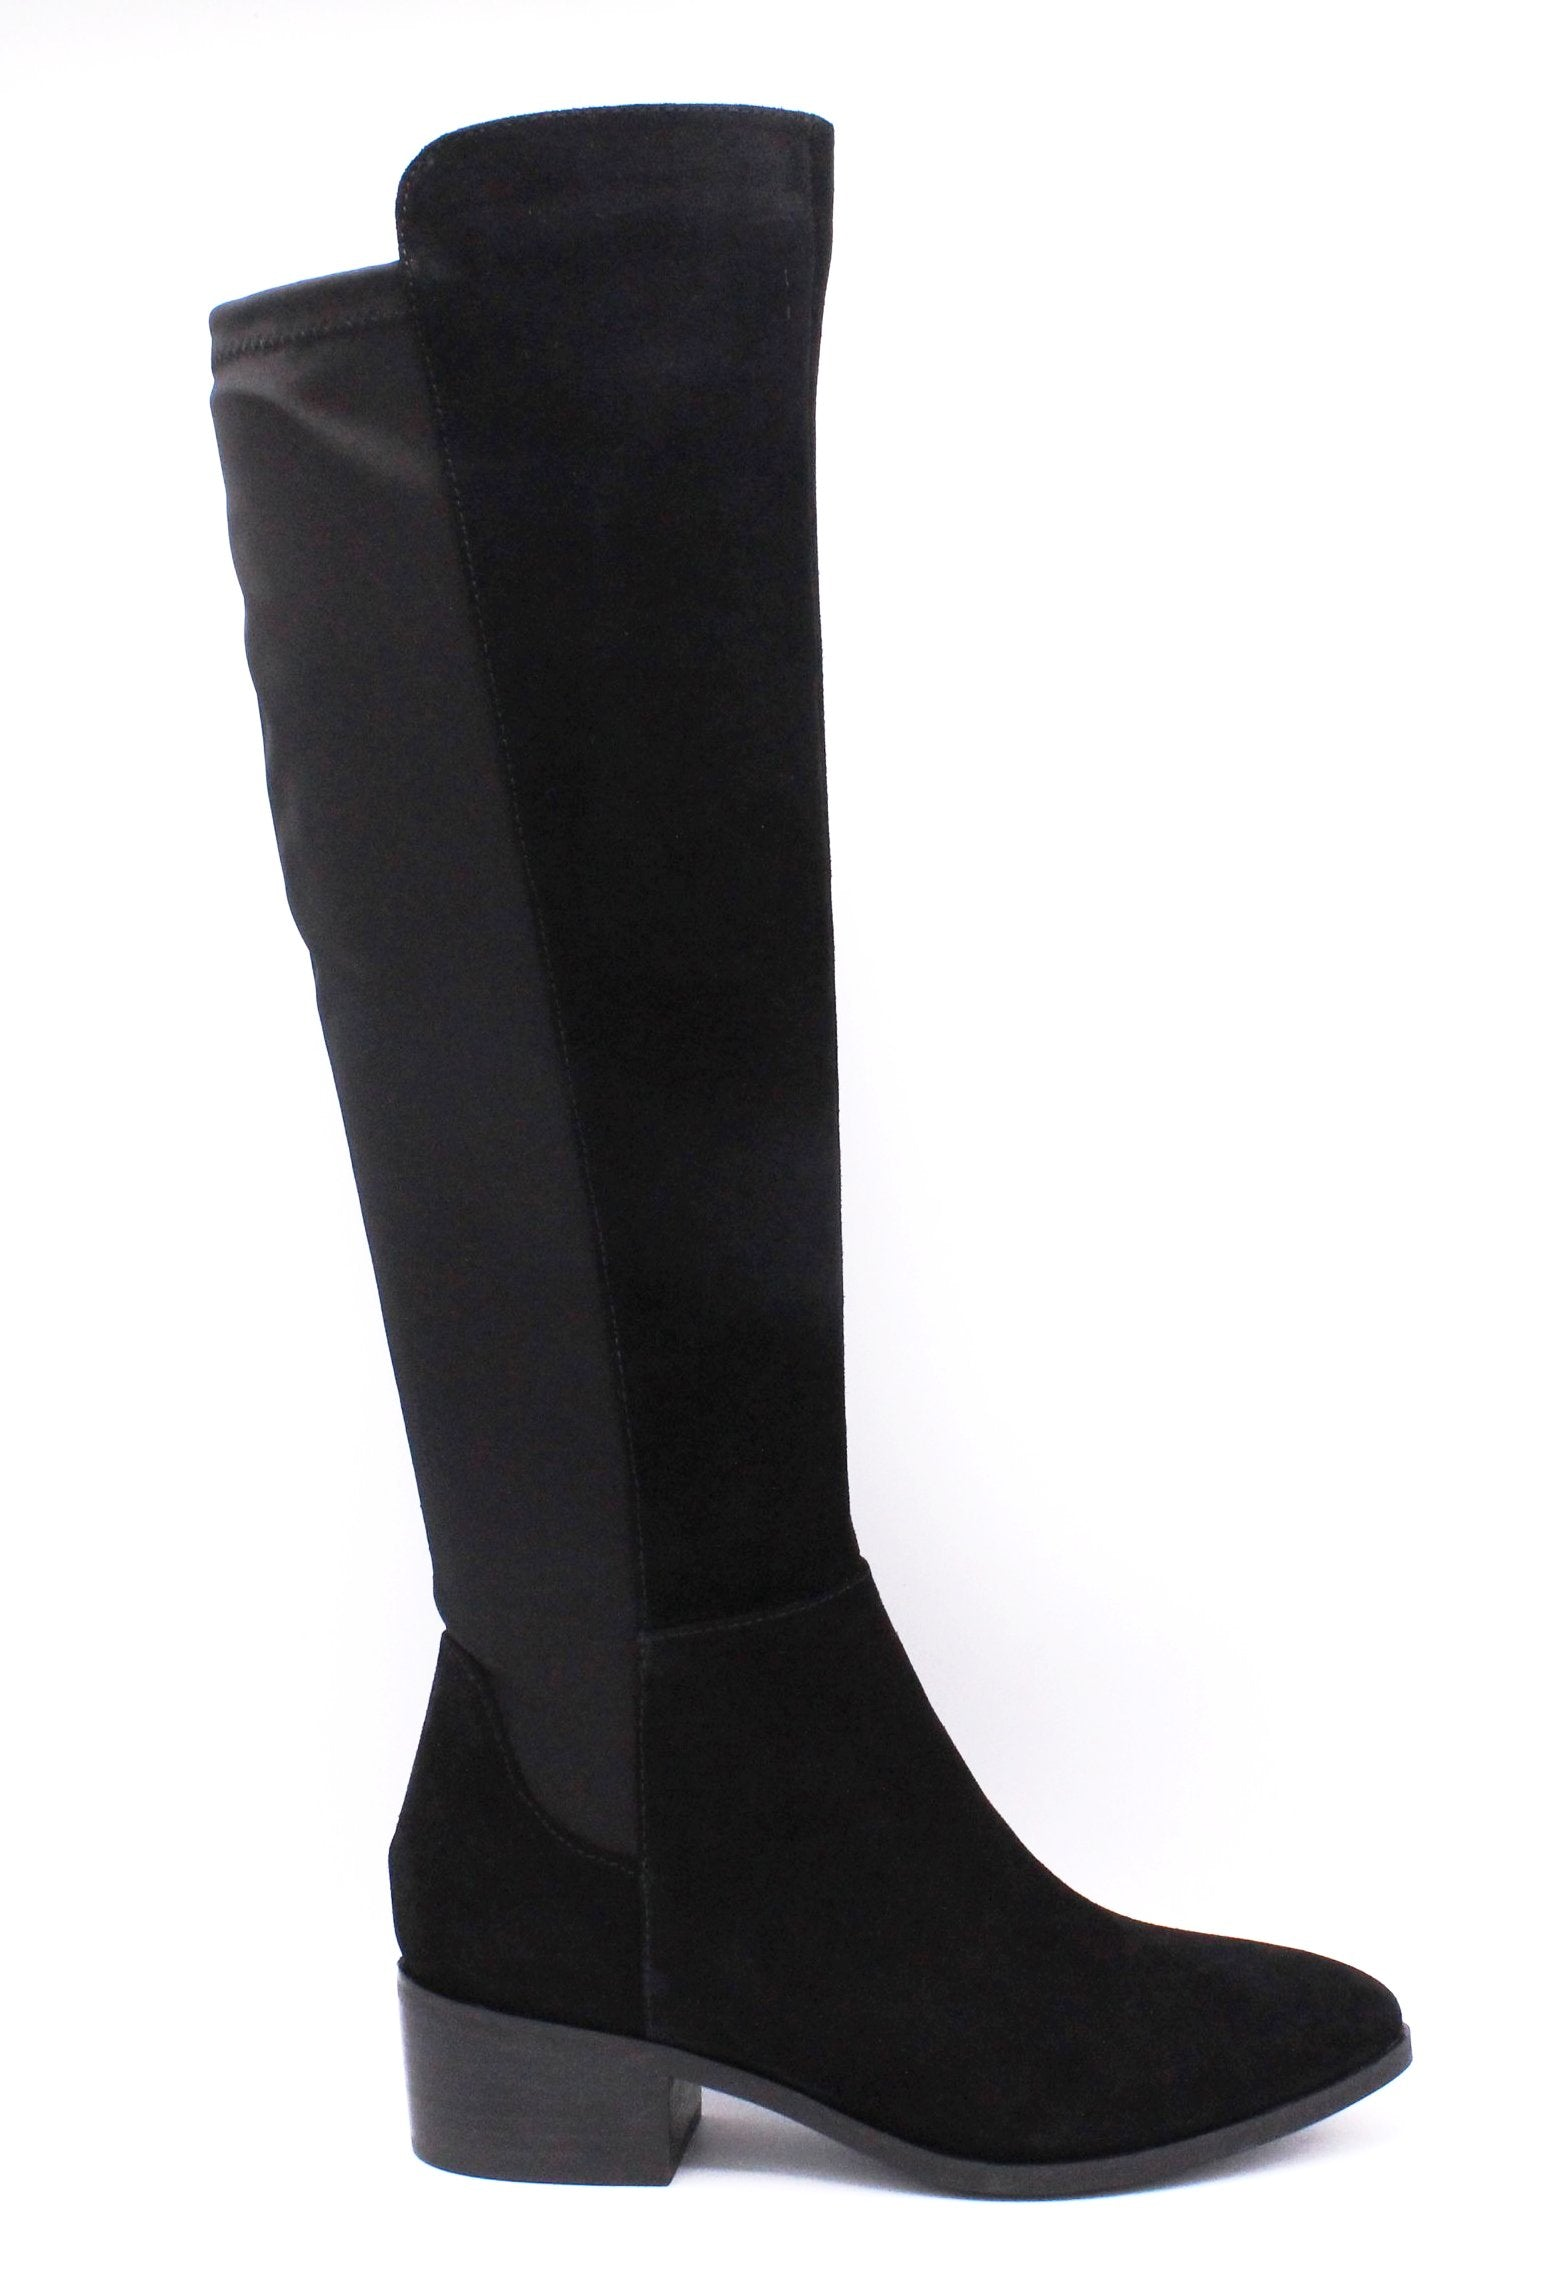 97c5b5ab9c5 Blondo  Gallo Black Suede Women s Boots